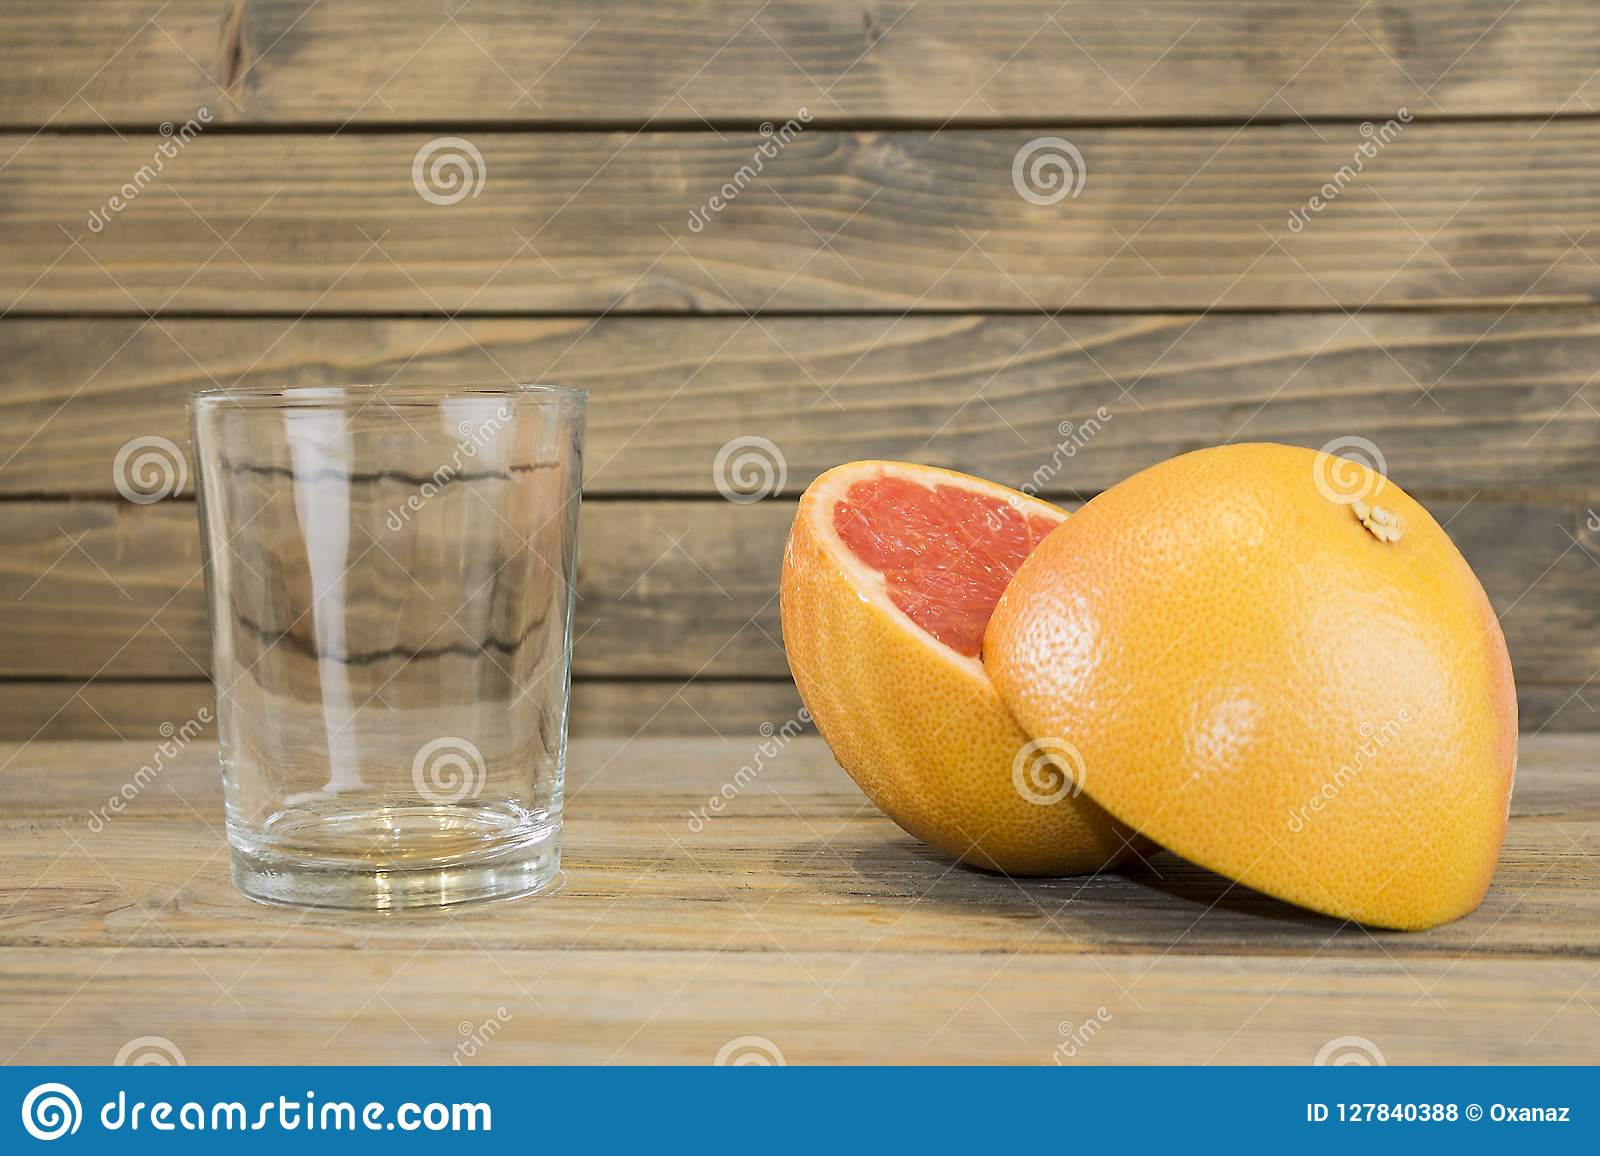 Juicy grapefruit close up view on wooden background